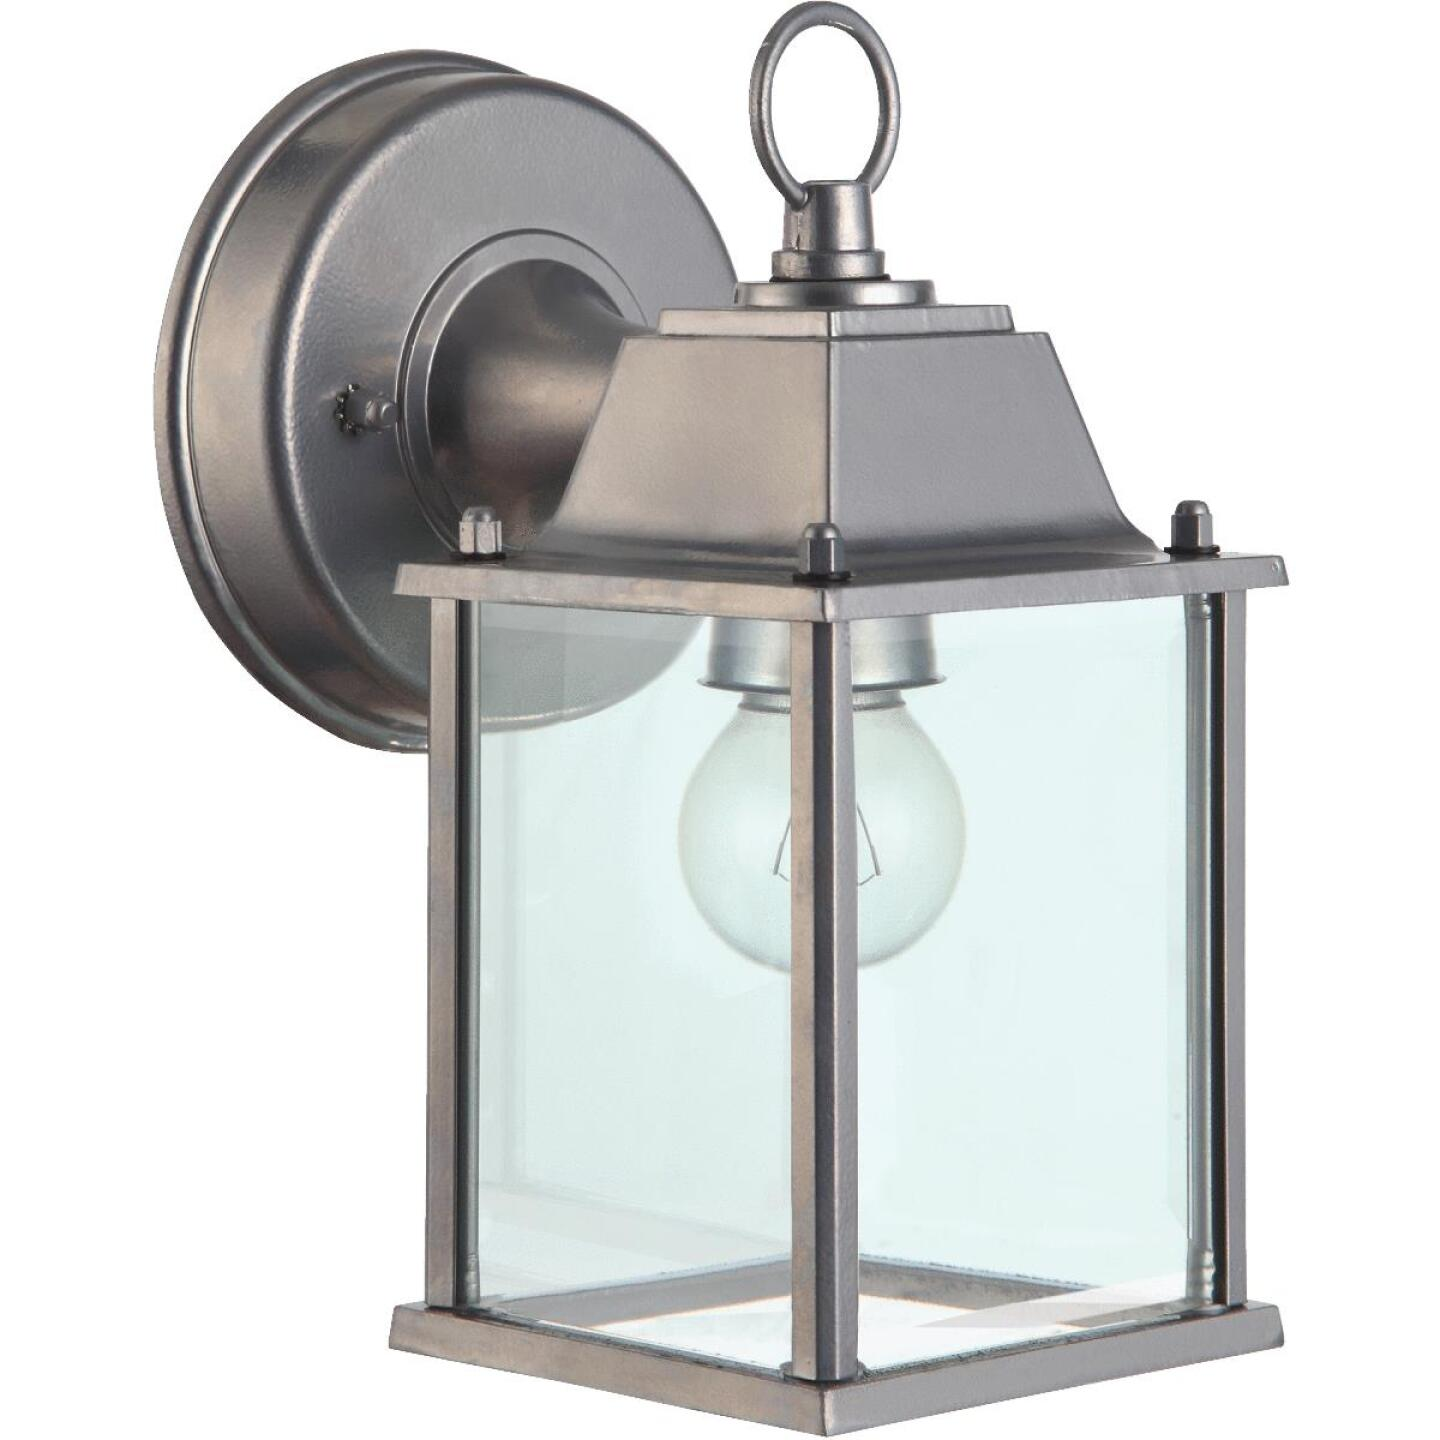 Home Impressions 100W Incandescent Brushed Nickle Lantern Outdoor Wall Light Fixture Image 1